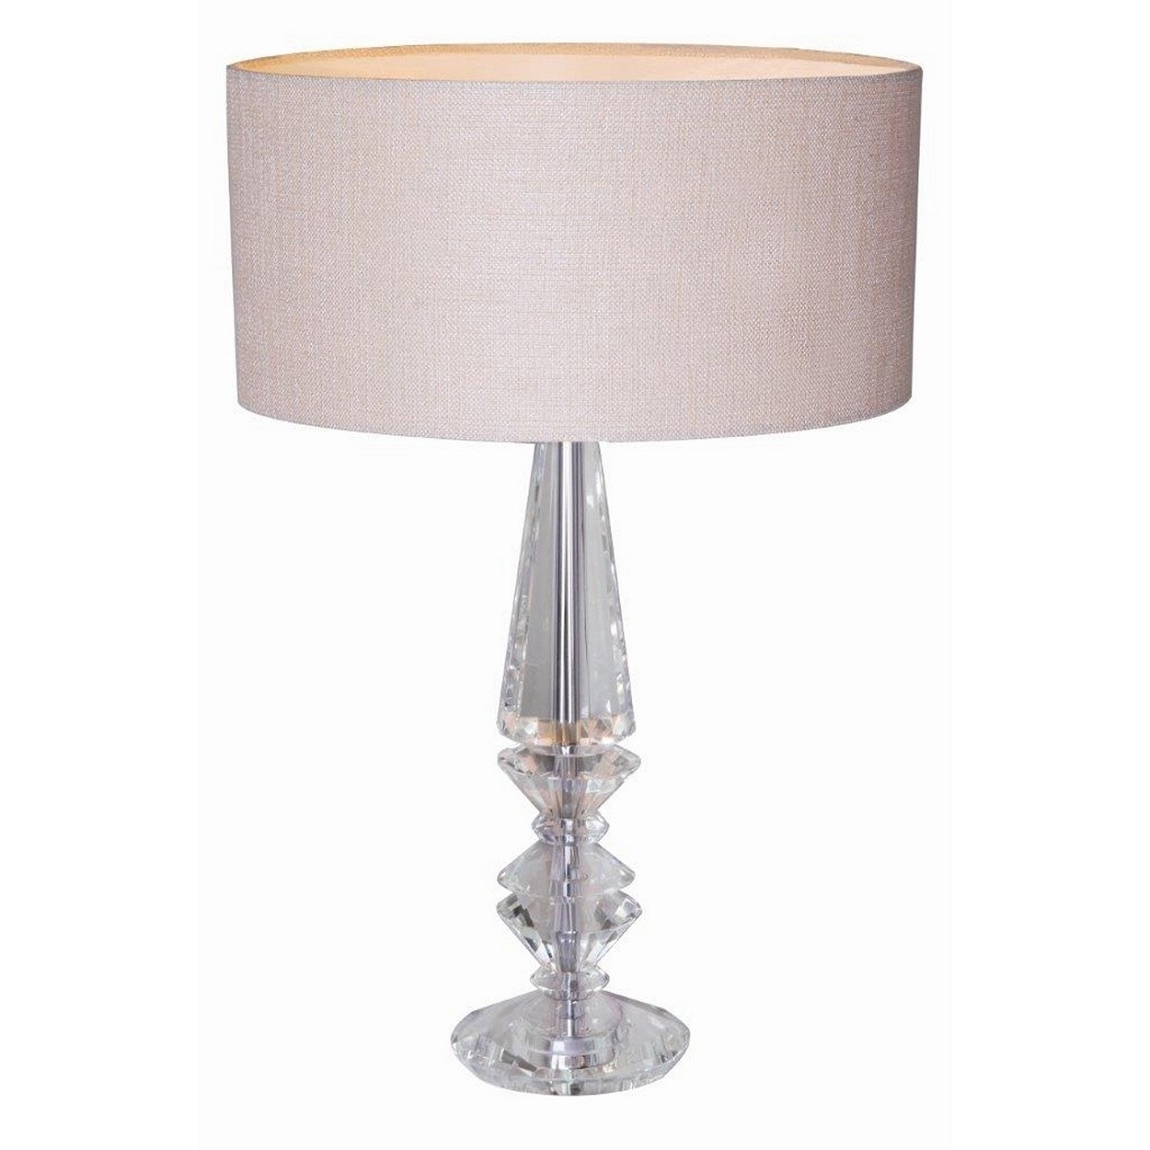 Famous Debenhams Table Lamps For Living Room Regarding Gallery Debenhams Table Lamps – Badotcom (View 4 of 15)